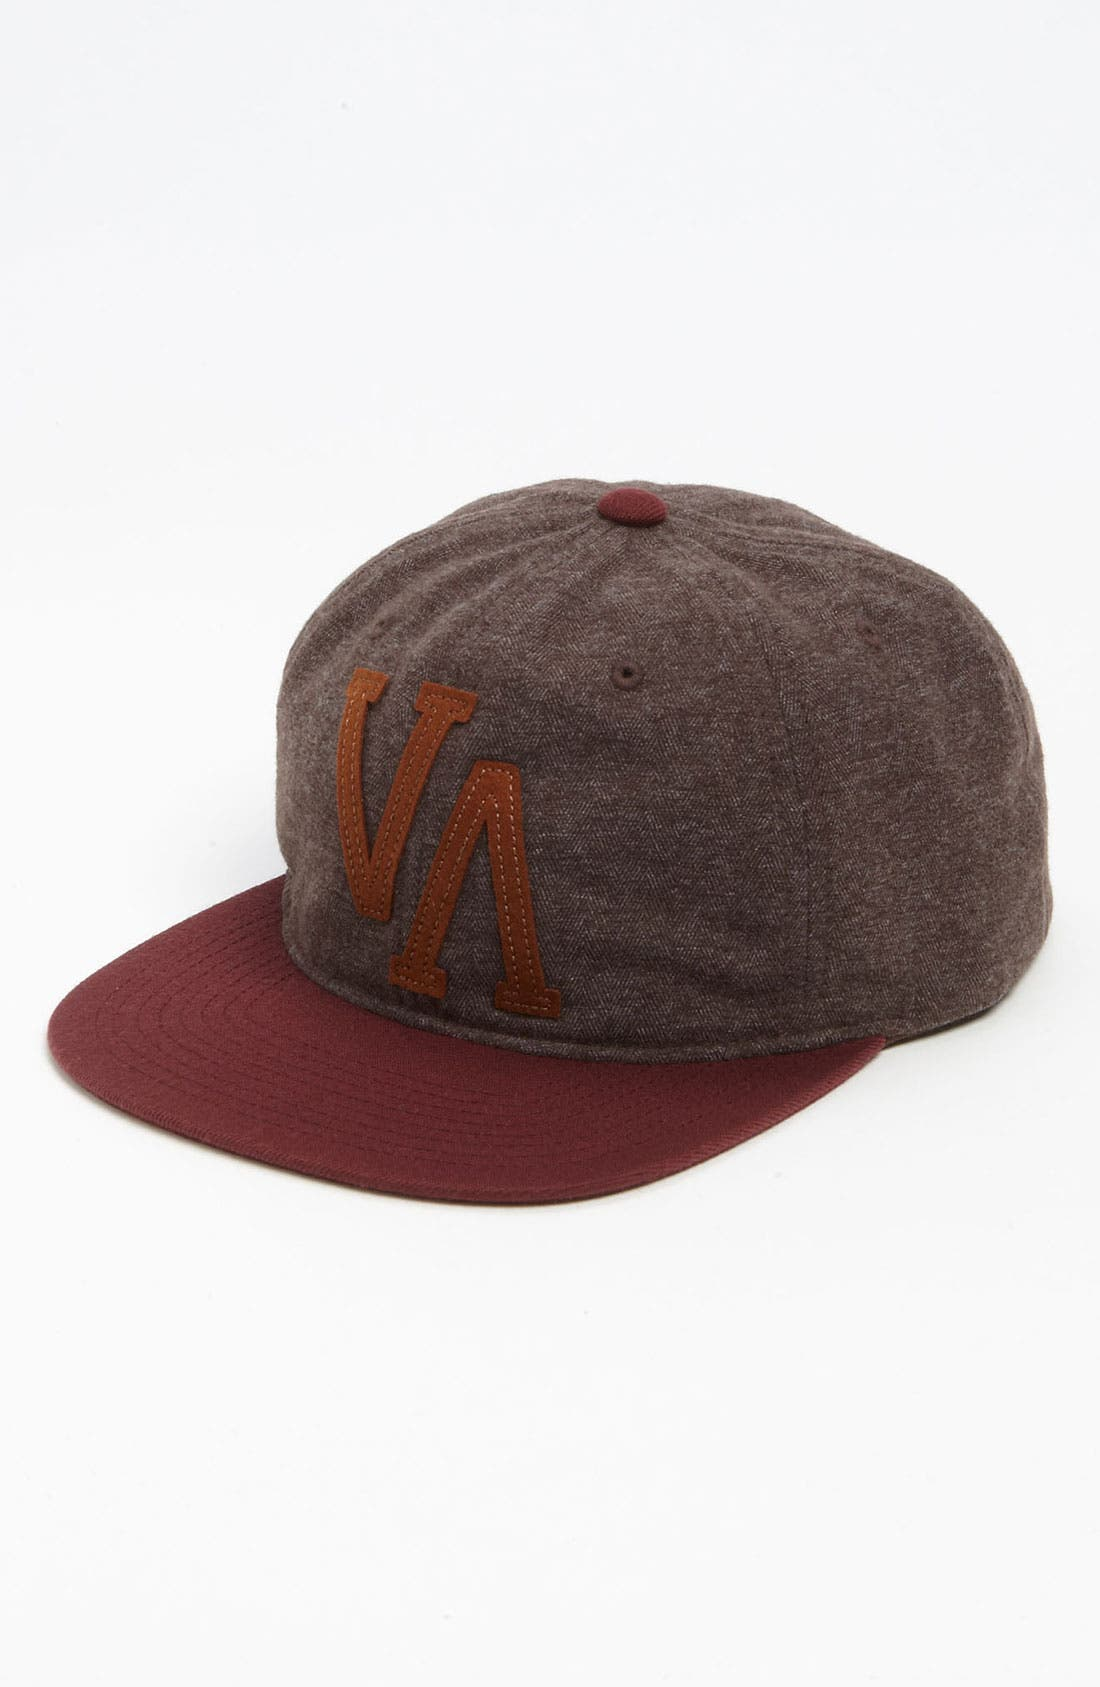 Alternate Image 1 Selected - RVCA 'Old Gold' Snapback Baseball Cap